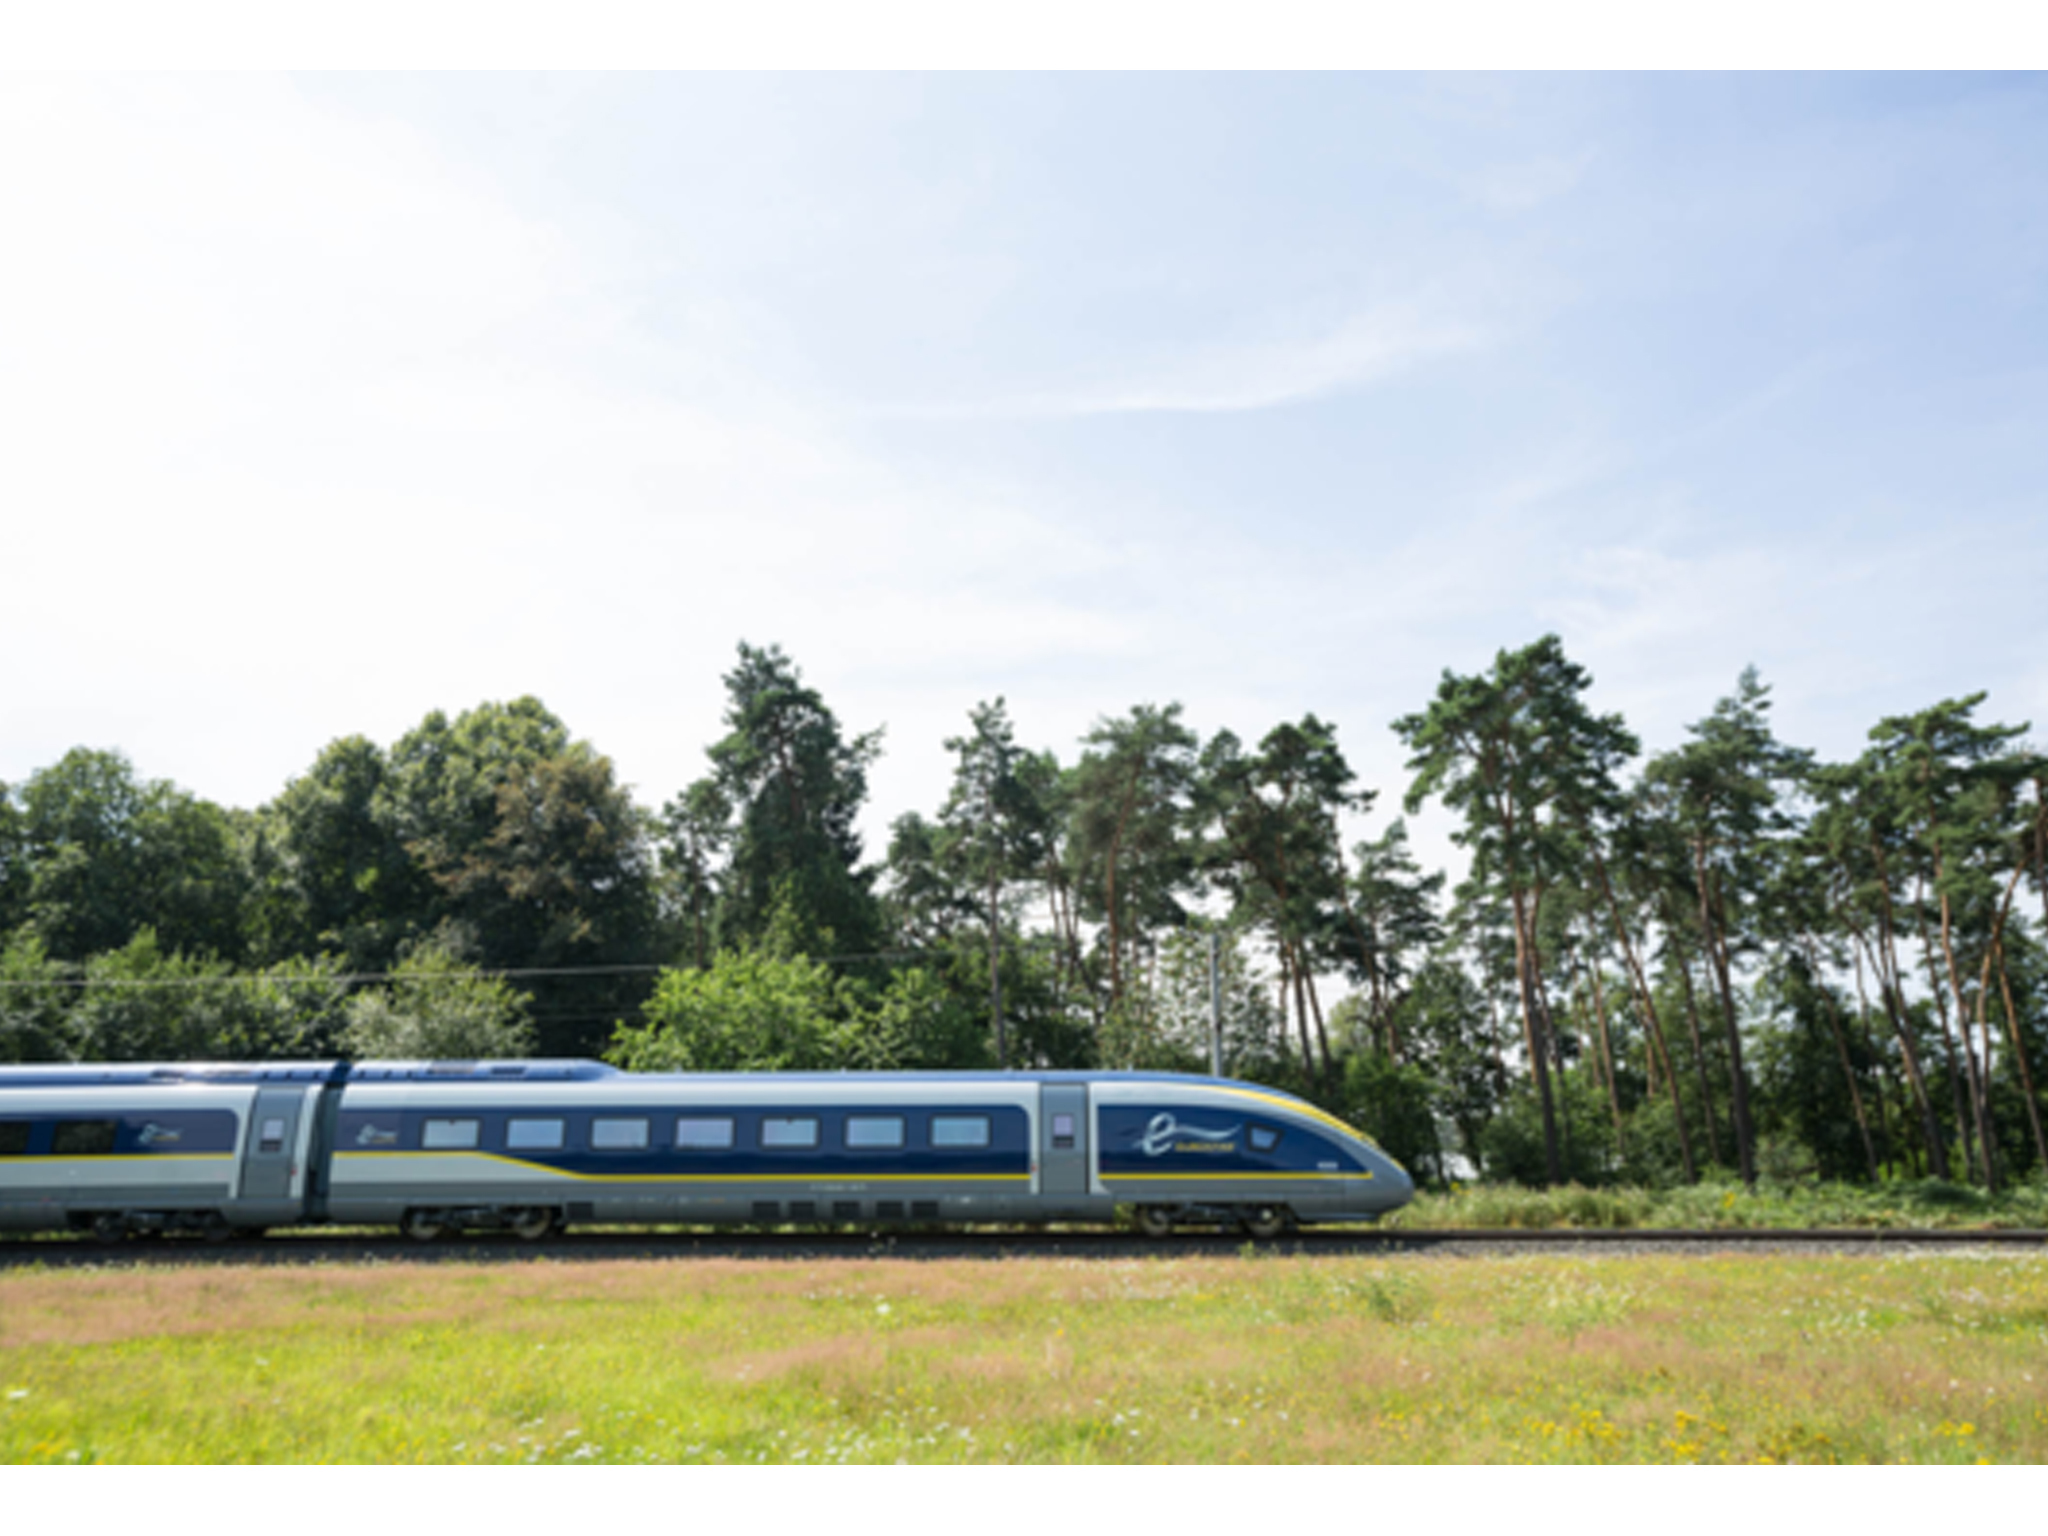 Win a pair of return tickets to Paris with Eurostar